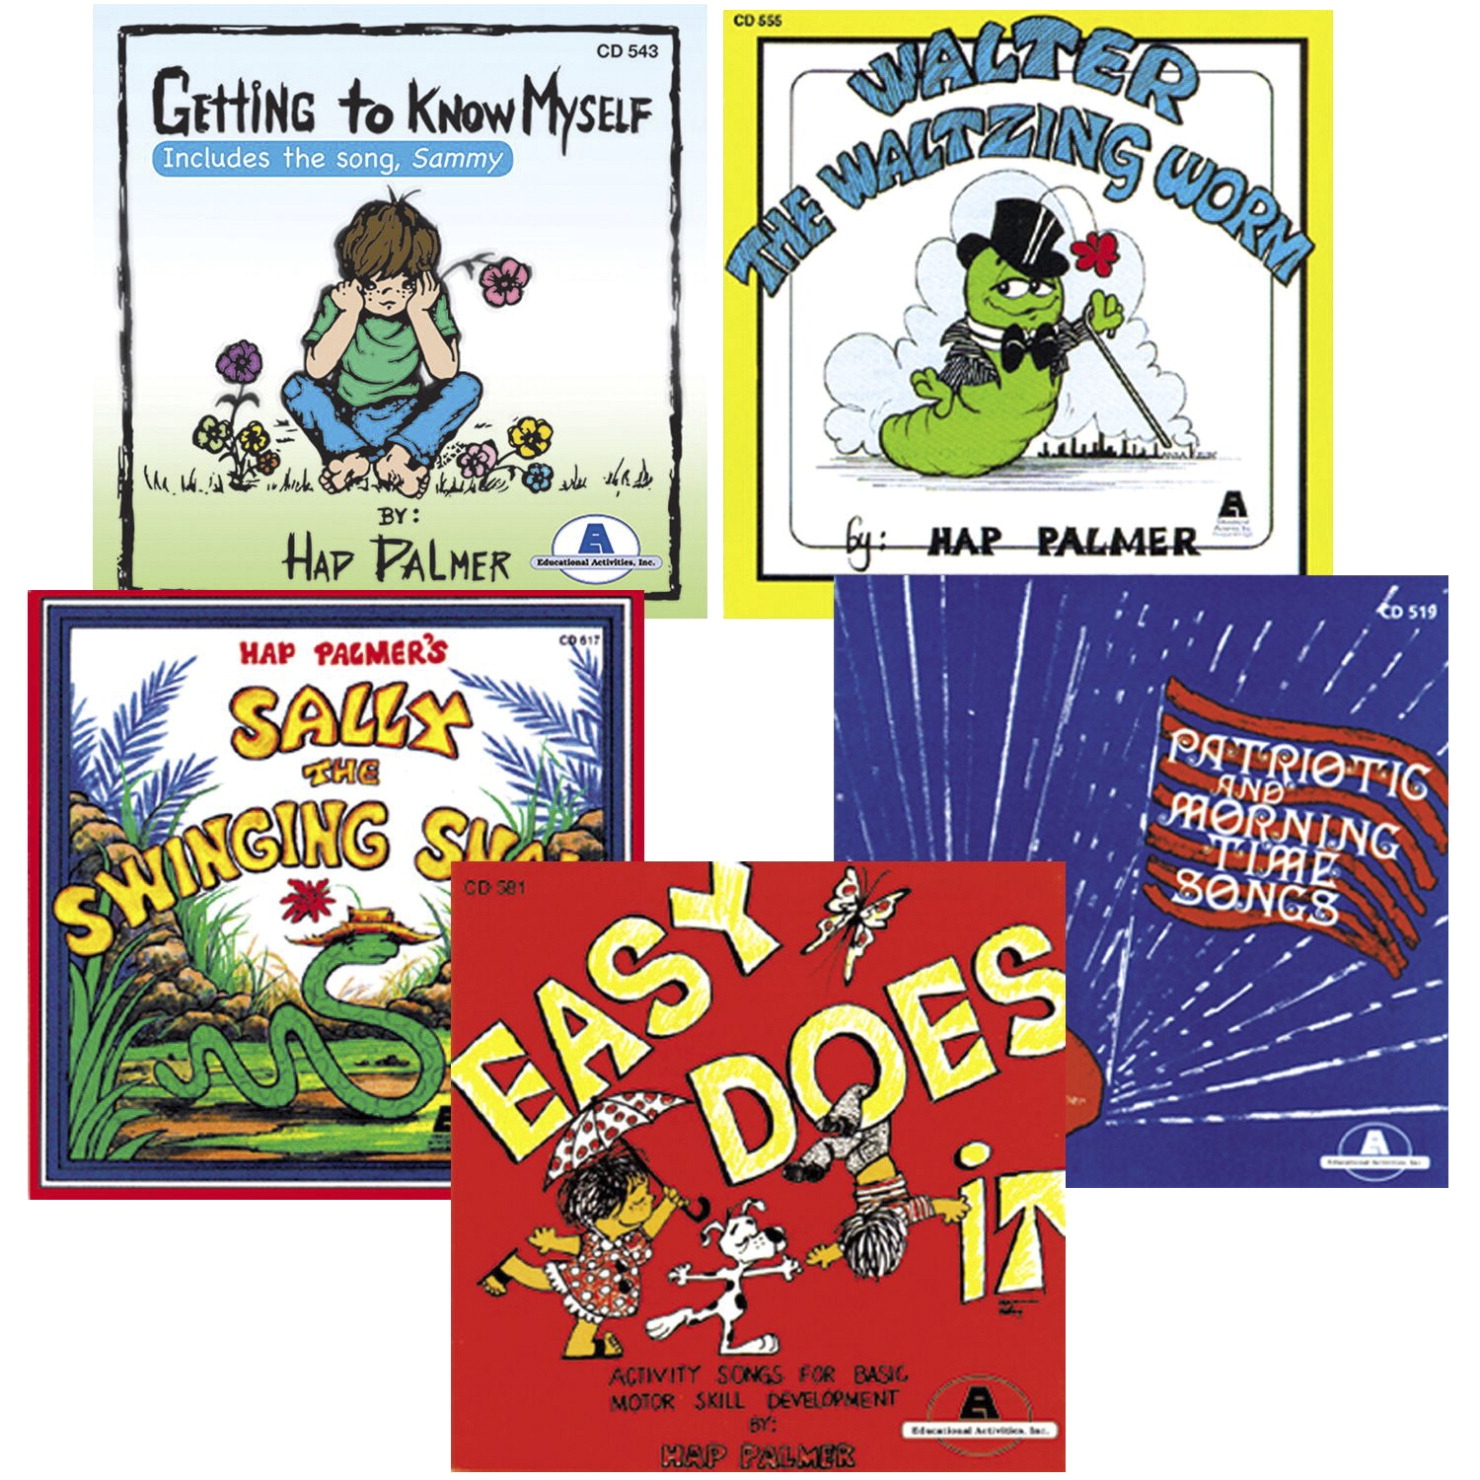 Educational Activities Best Loved Hap Palmer Cd Collection Set 1; Set Of 5 - 1531306 - Toys Books & Cds 1531306